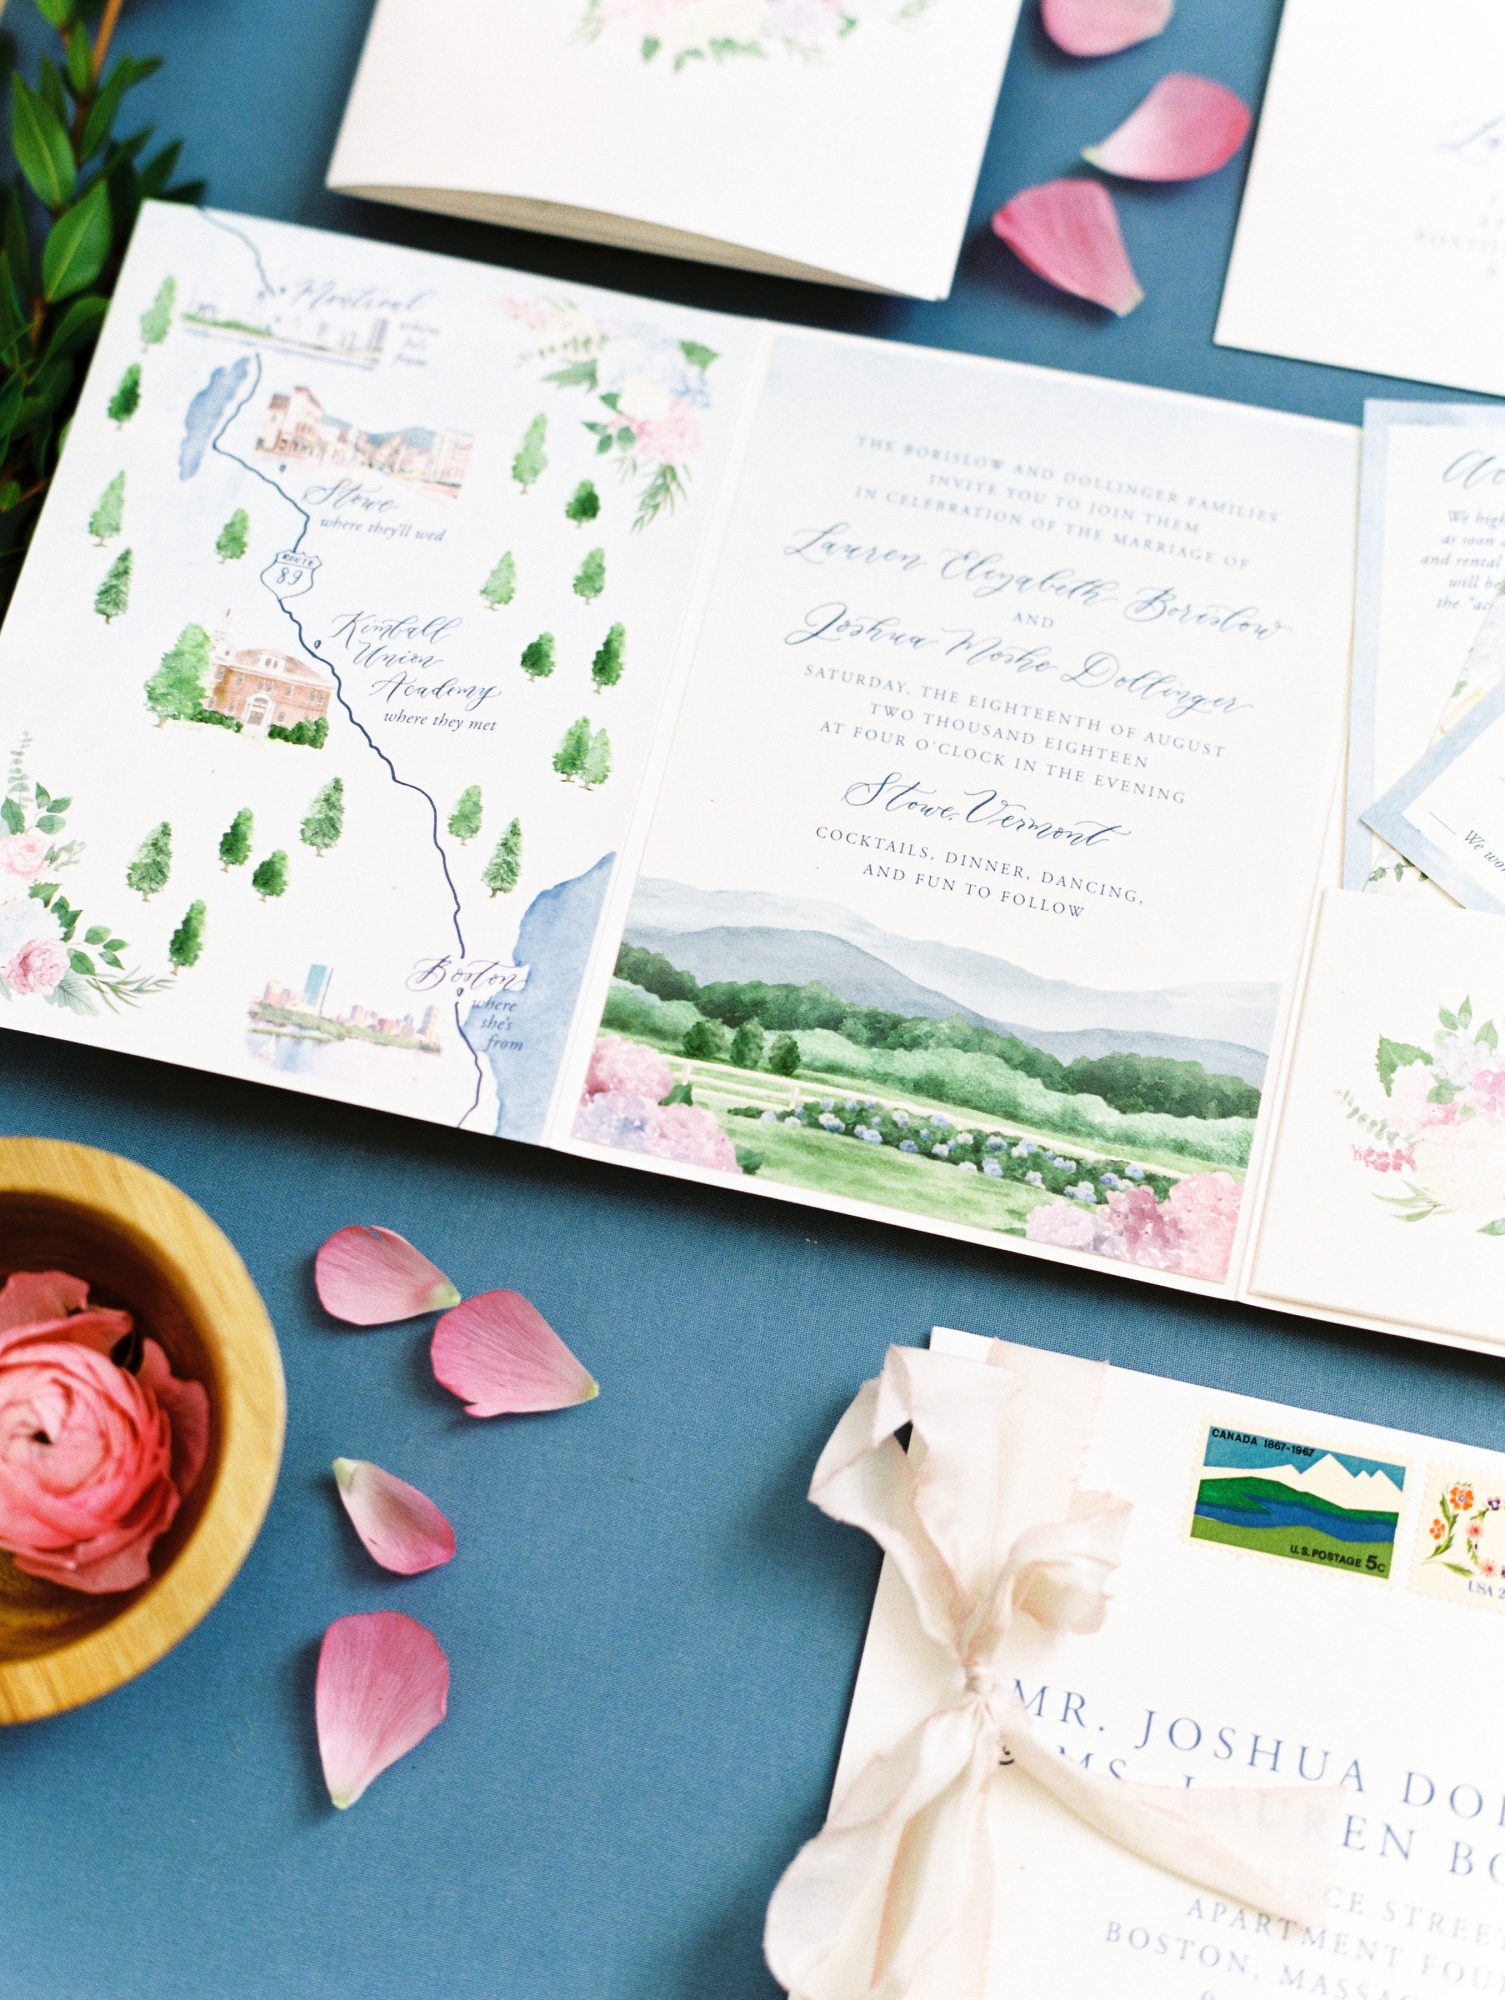 lauren josh wedding invitations